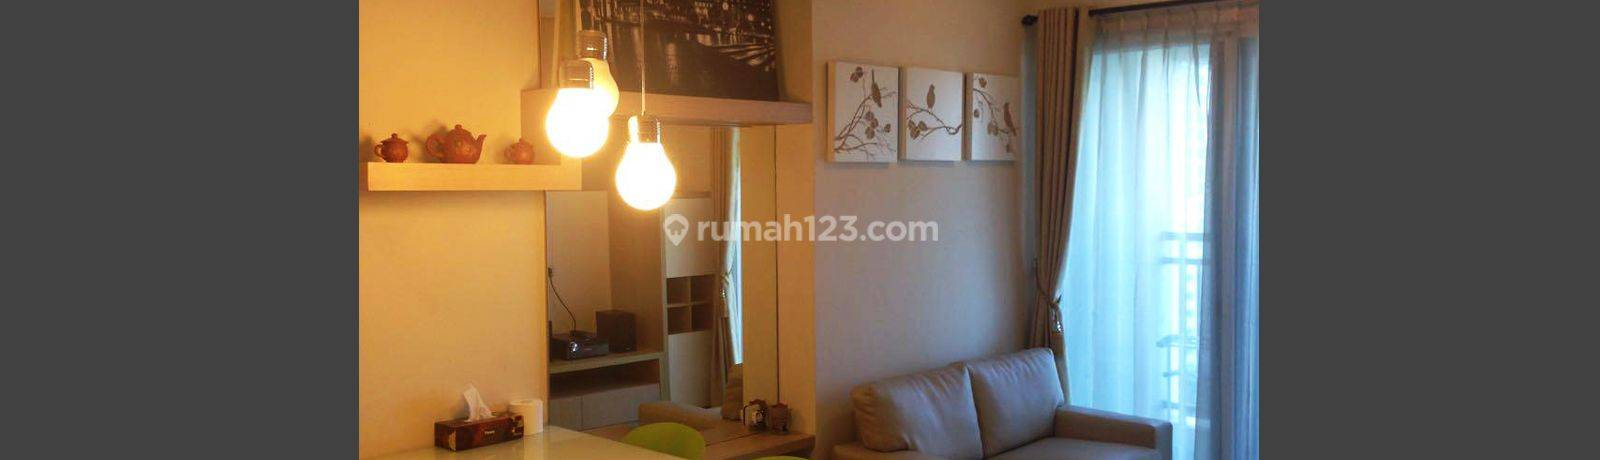 FOR RENT : Thamrin Exectutive Residence 1 BR Fully Furnished